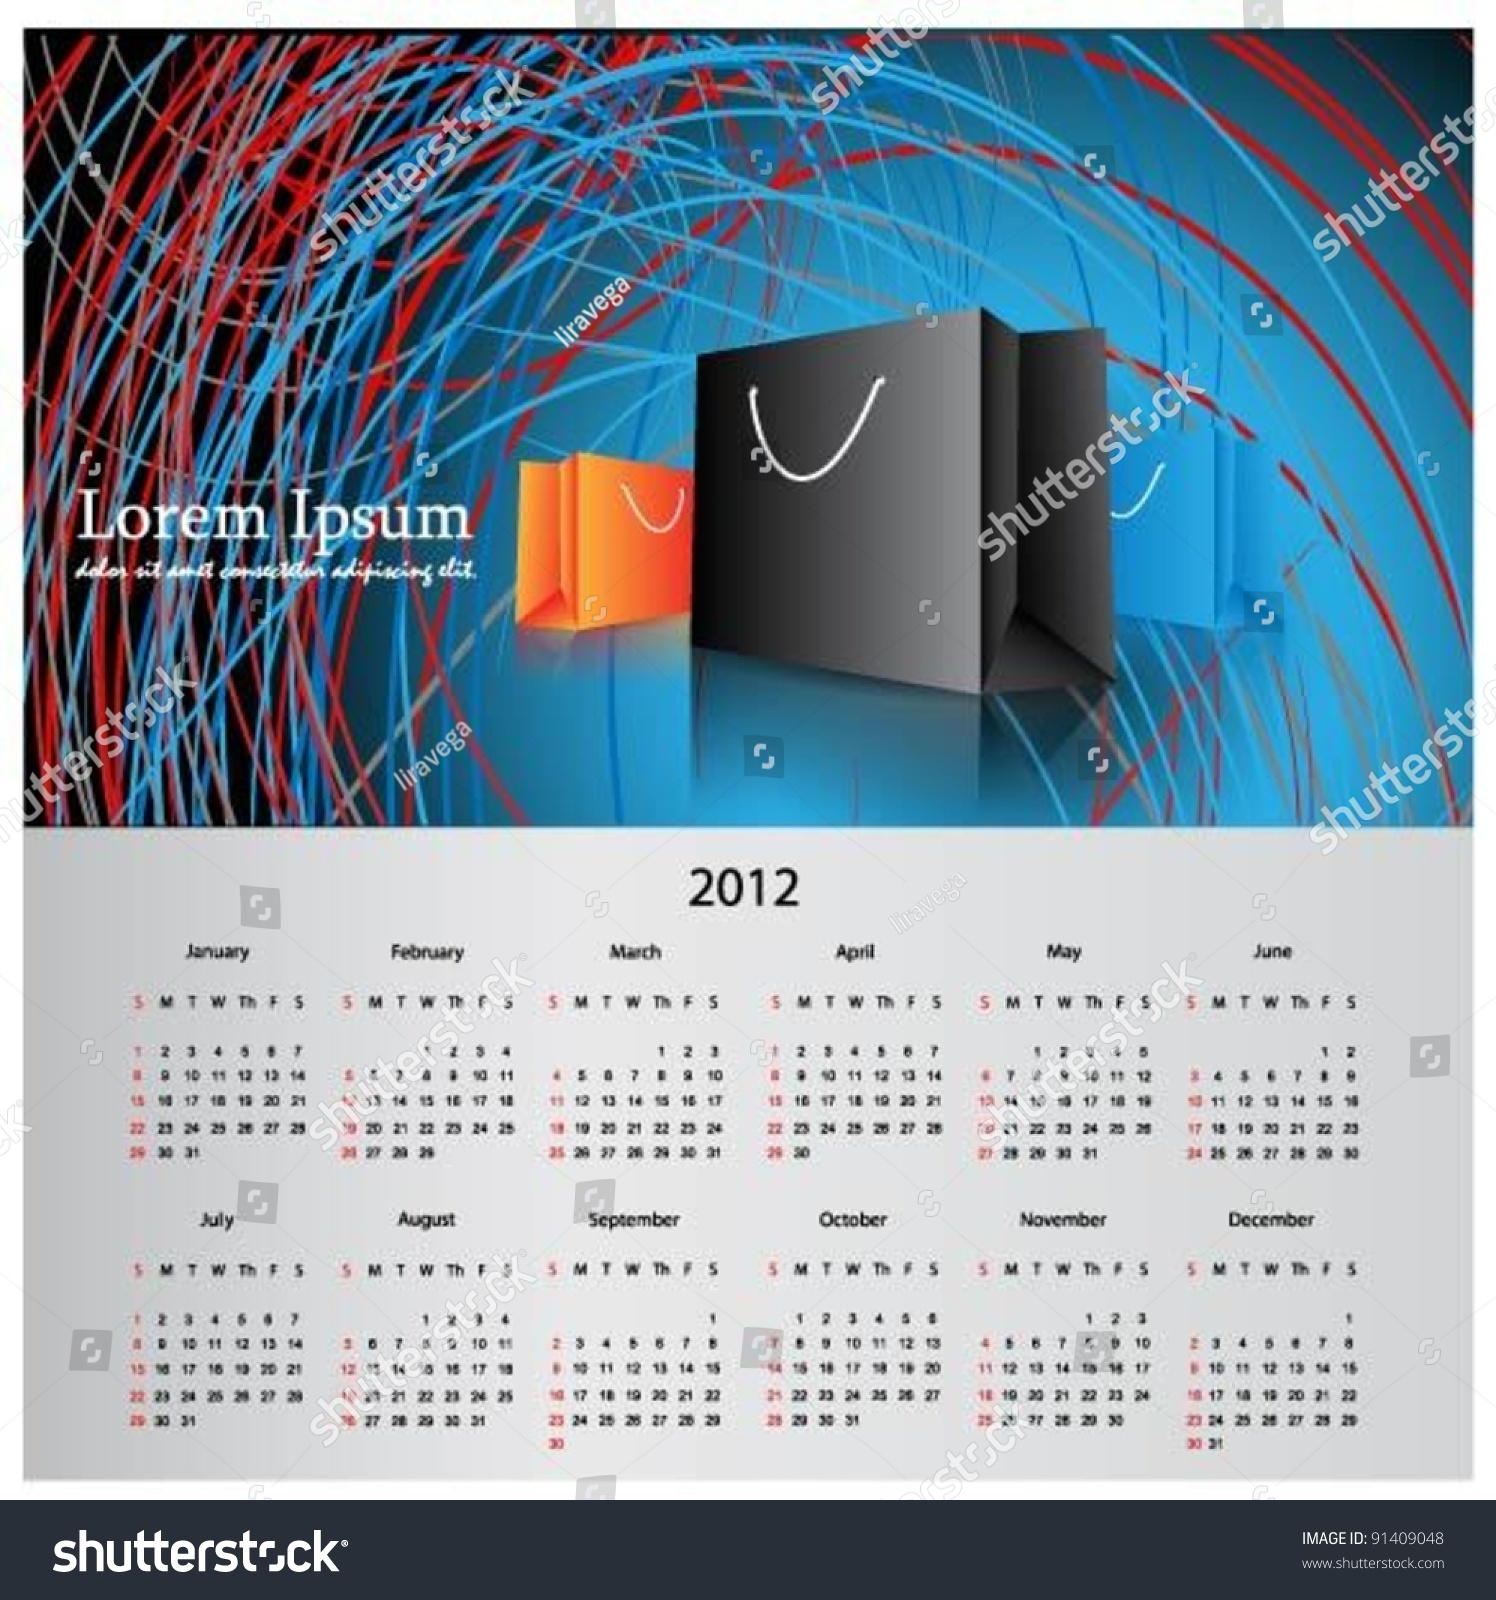 Elegant Calendar Design : Elegant calendar design for year stock vector